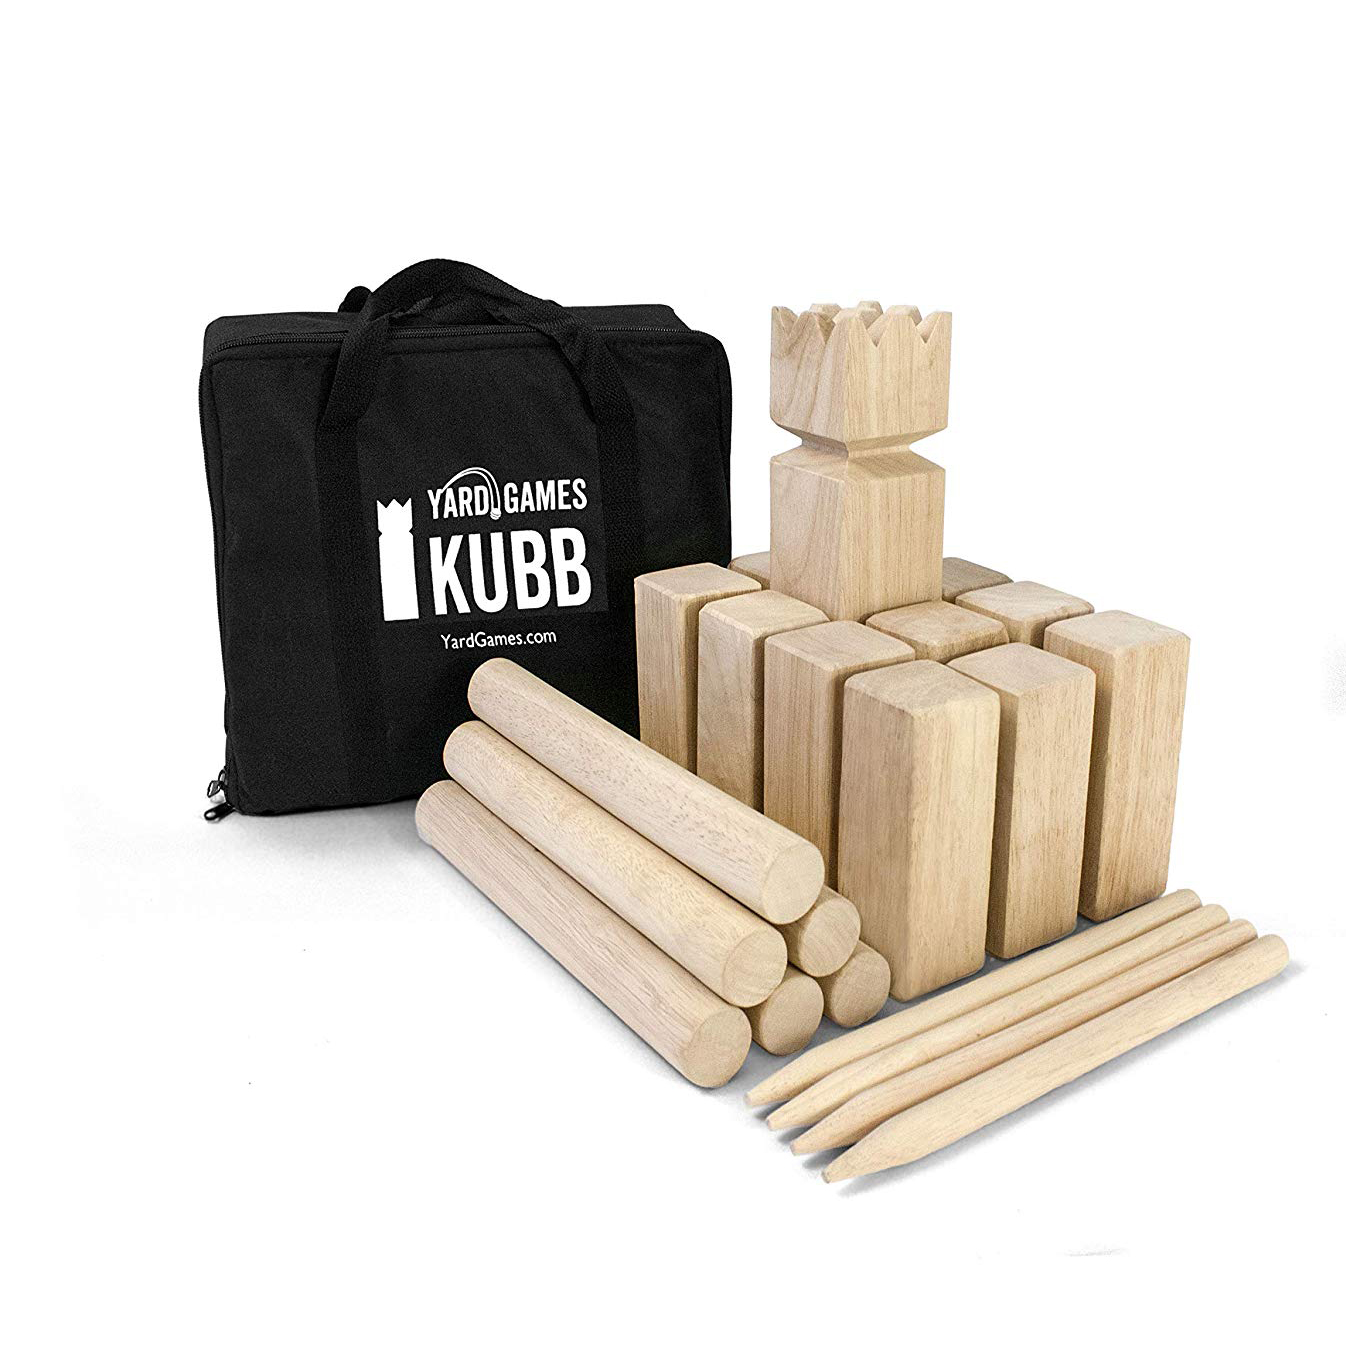 Valentine's Day gifts for him - Yard Games Kubb Outdoor Tossing Game